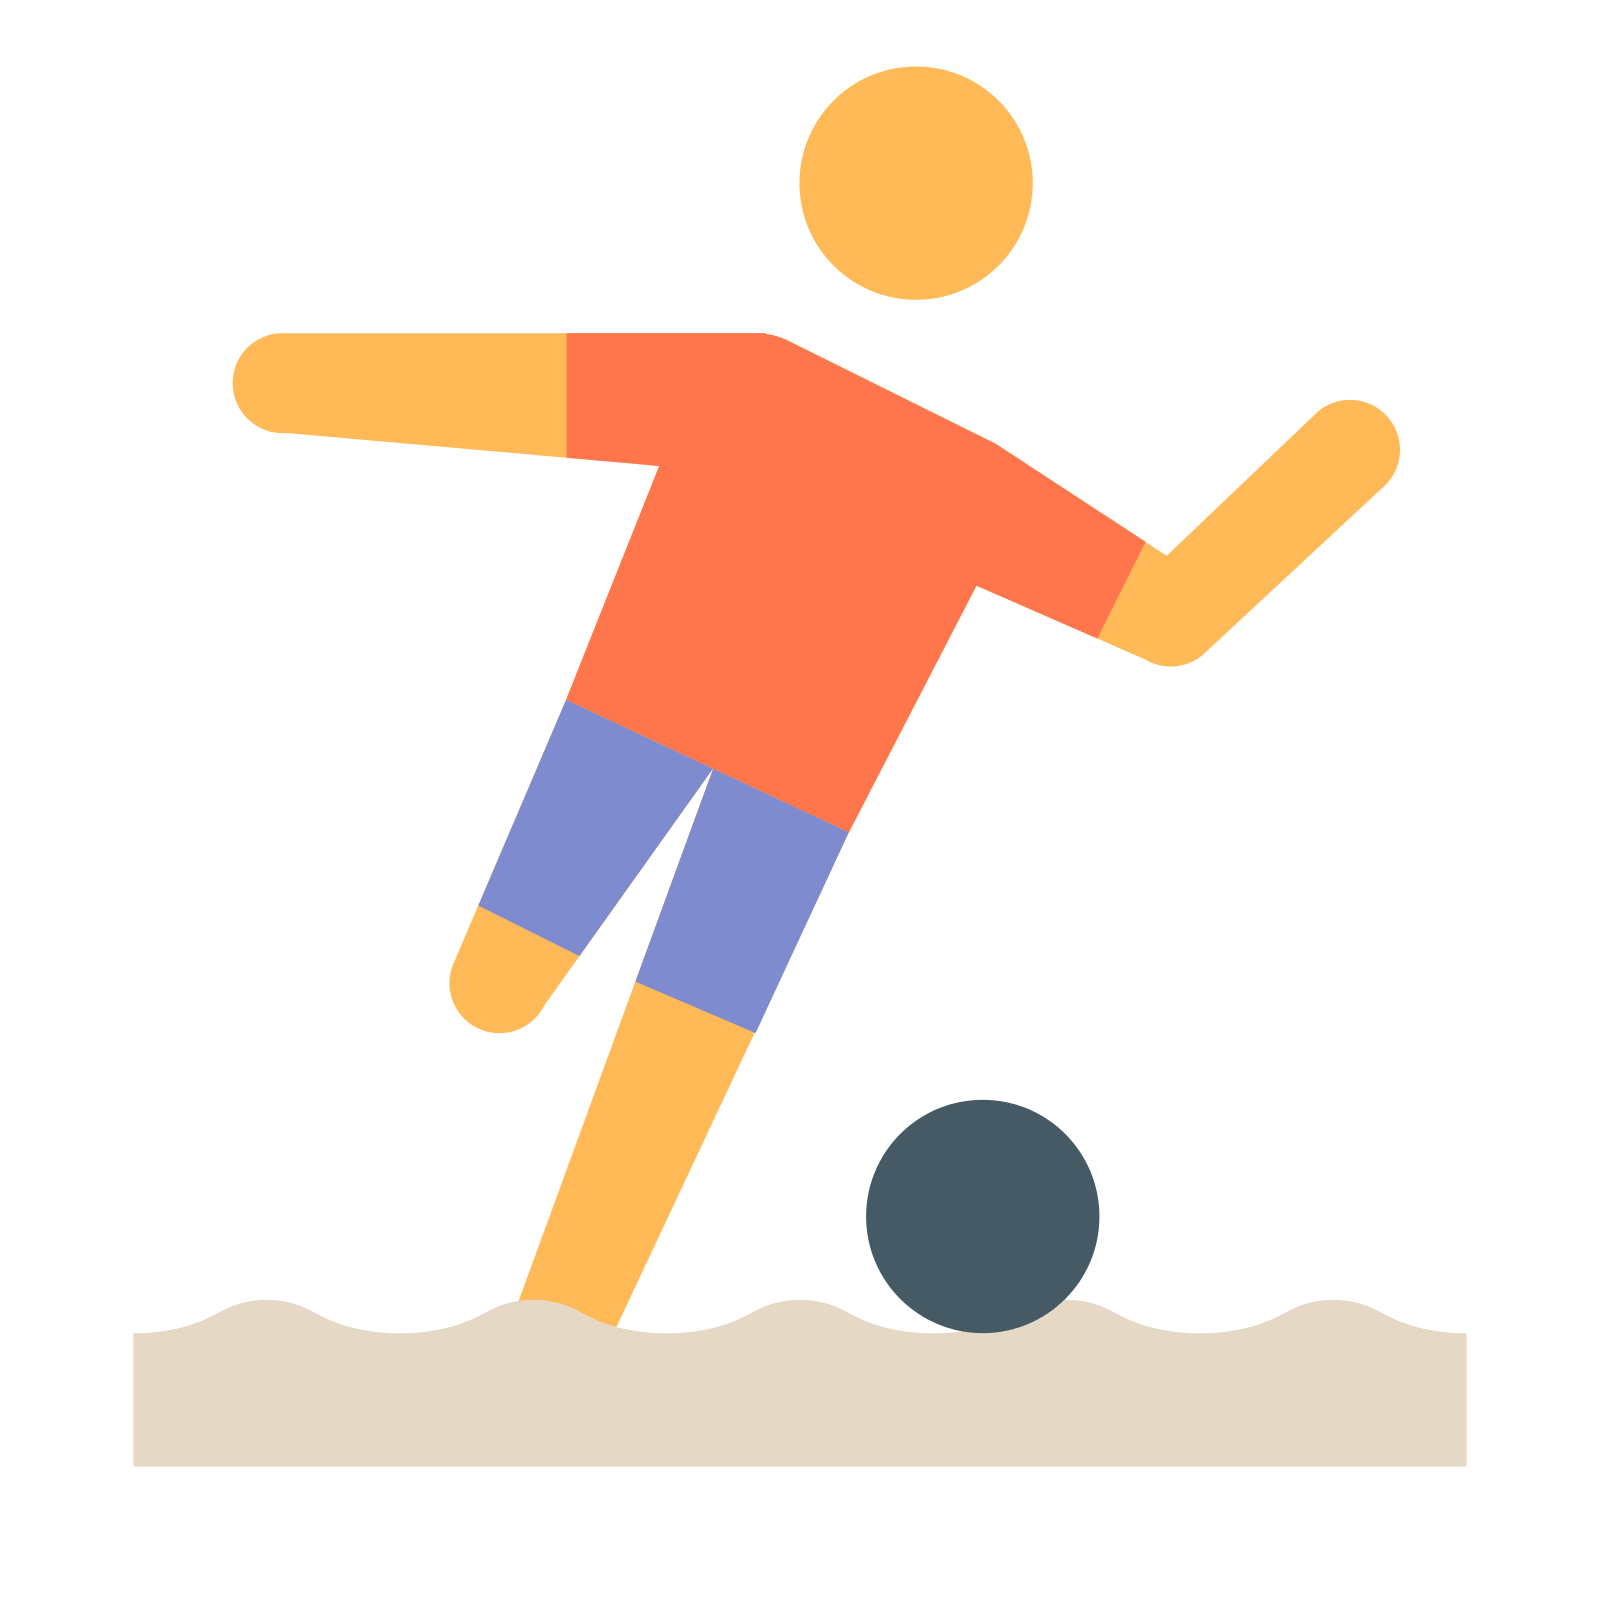 Drawn pokeball soccer goal post Soccer for Ball icon Icons